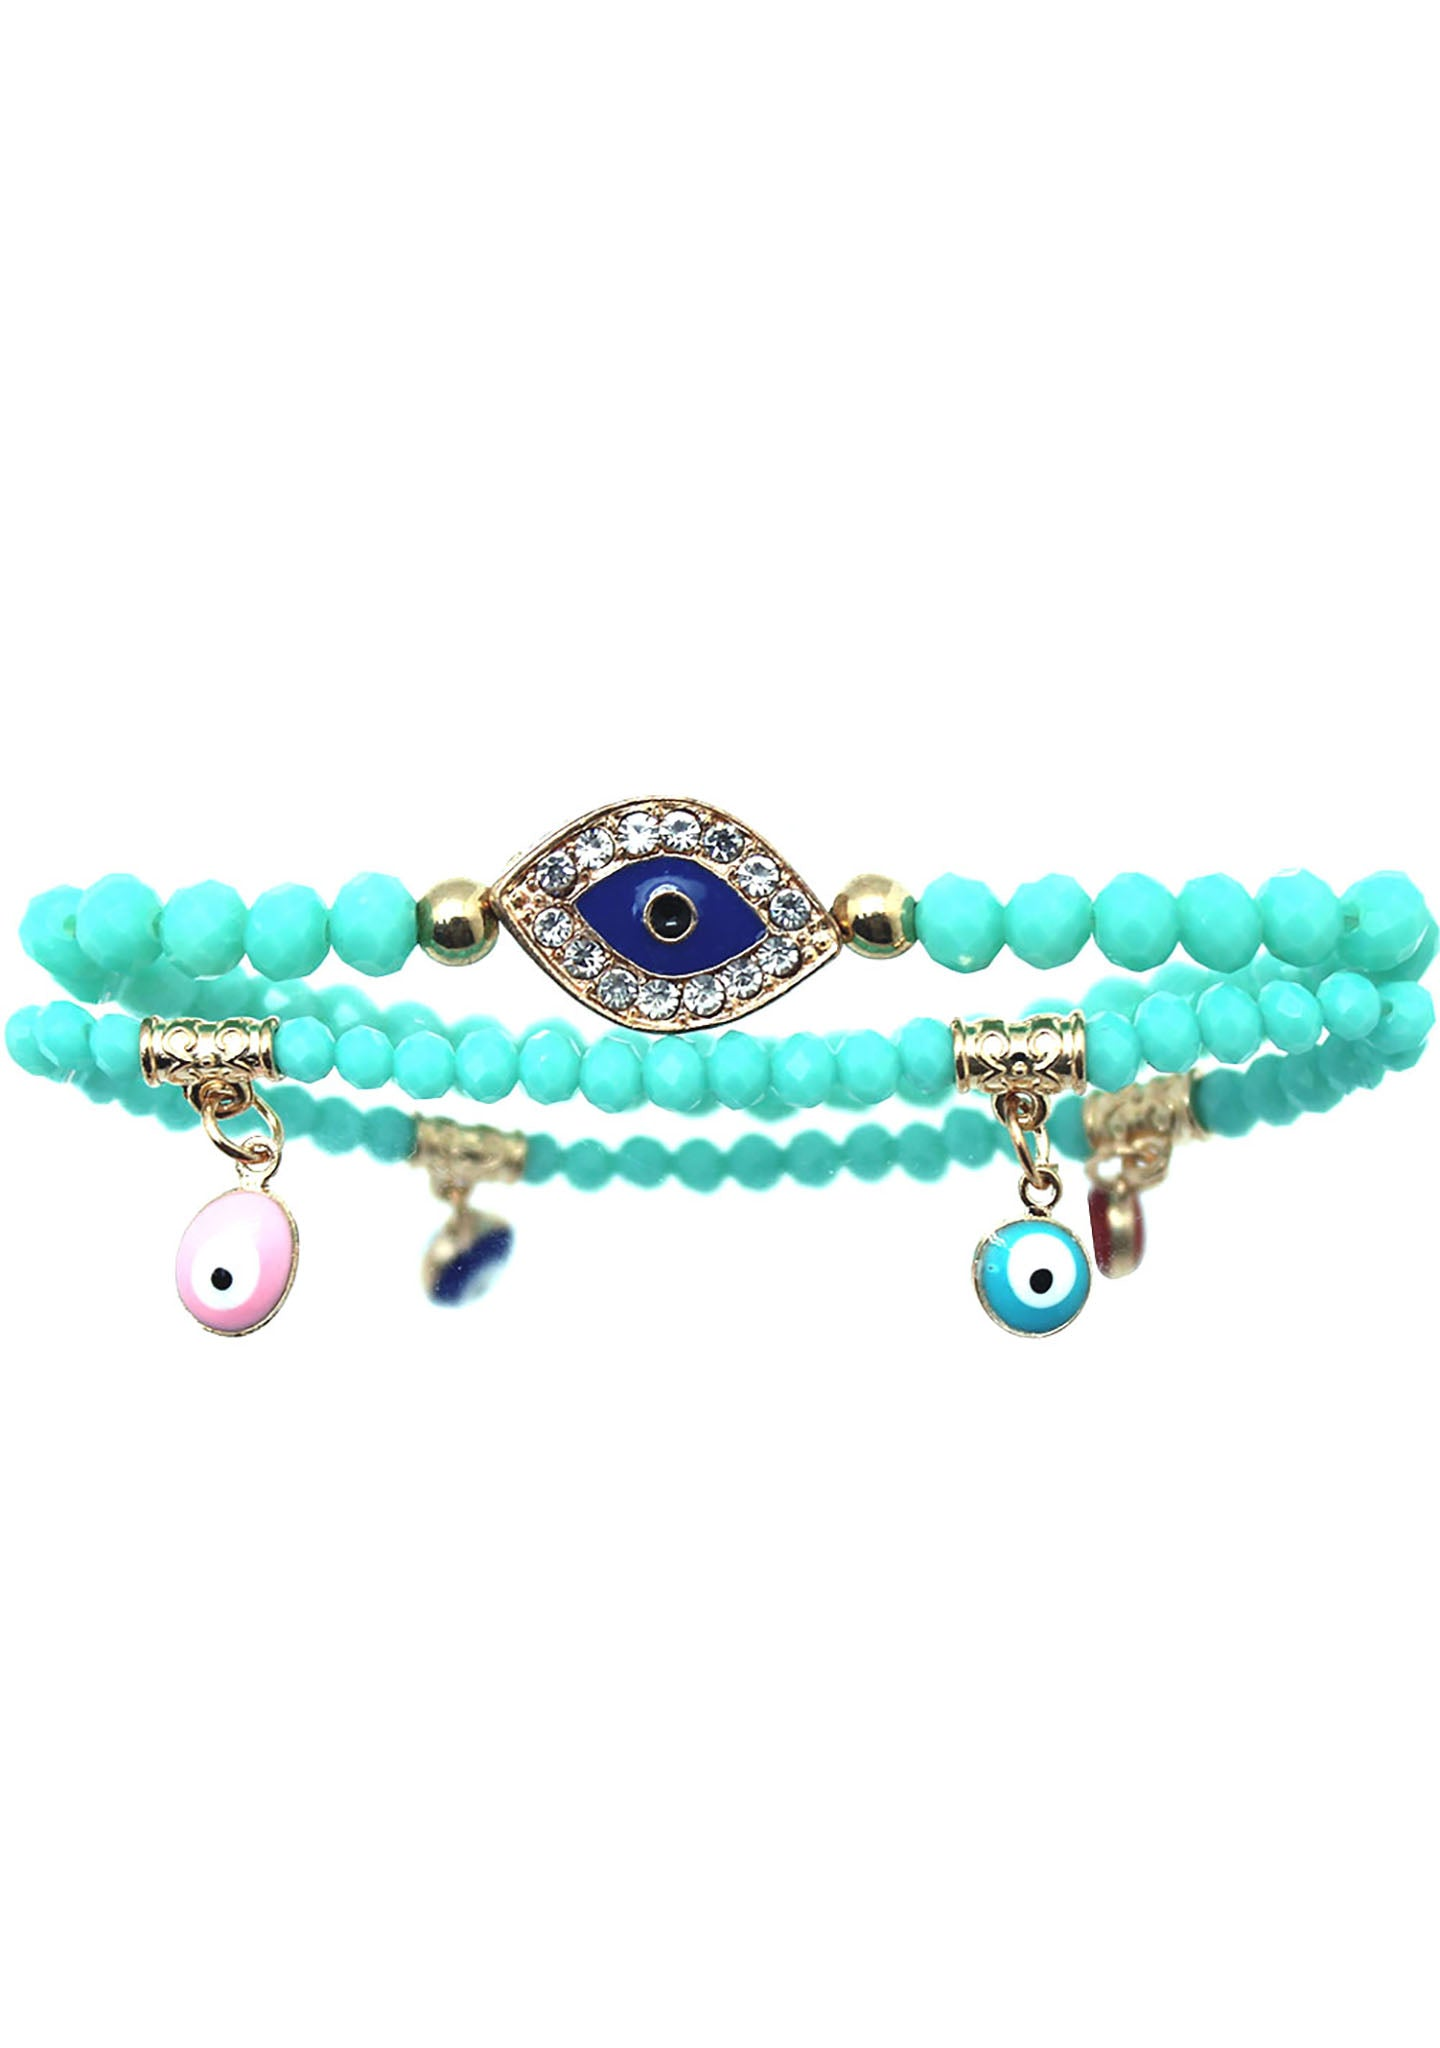 7 LUXE Crystal Evil Eye Beaded Bracelet Set in Turquoise